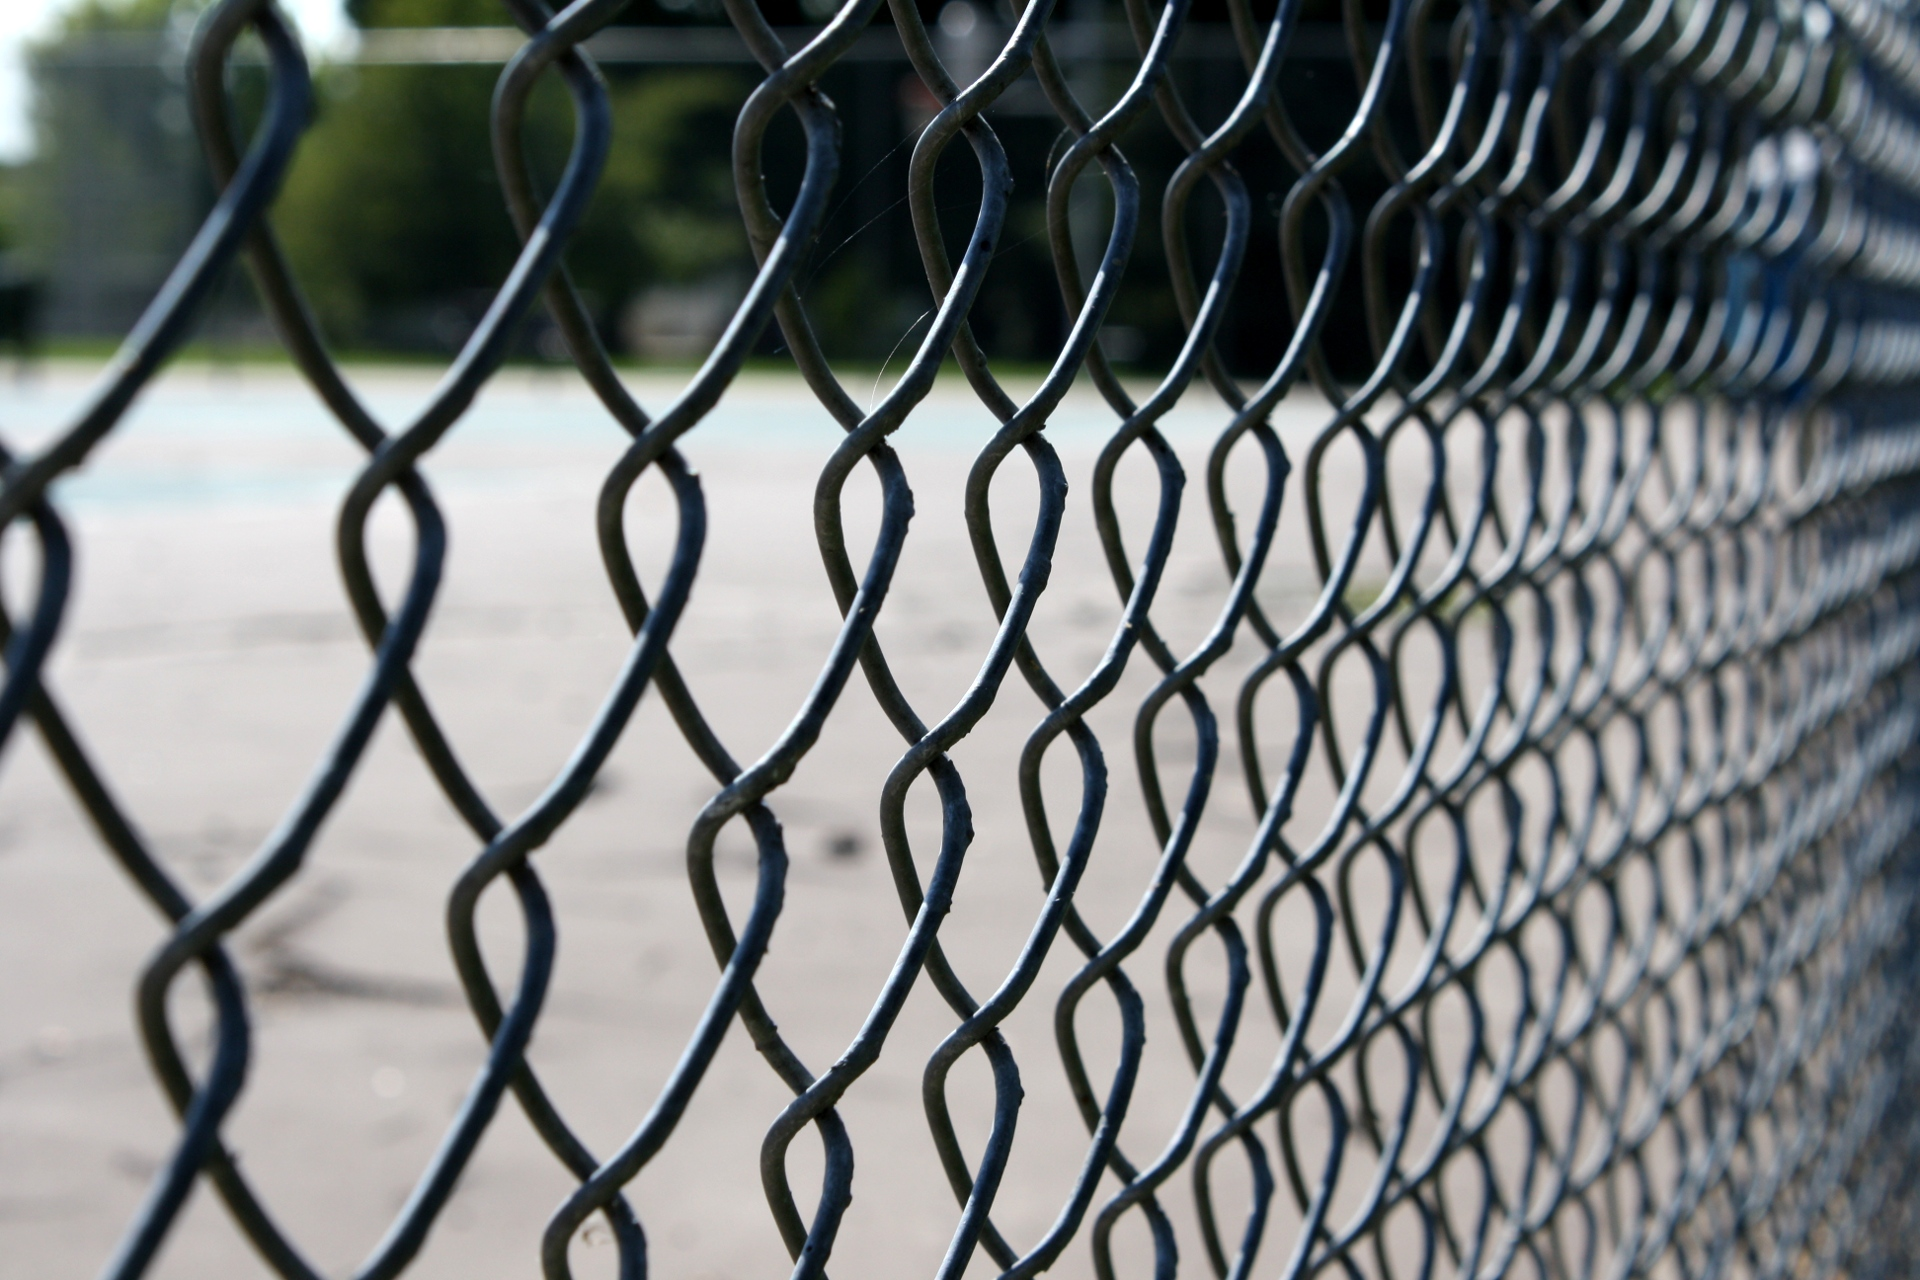 Download Fencing Wallpaper - 851325-metal-fence-wallpaper  Collection_92806.jpg